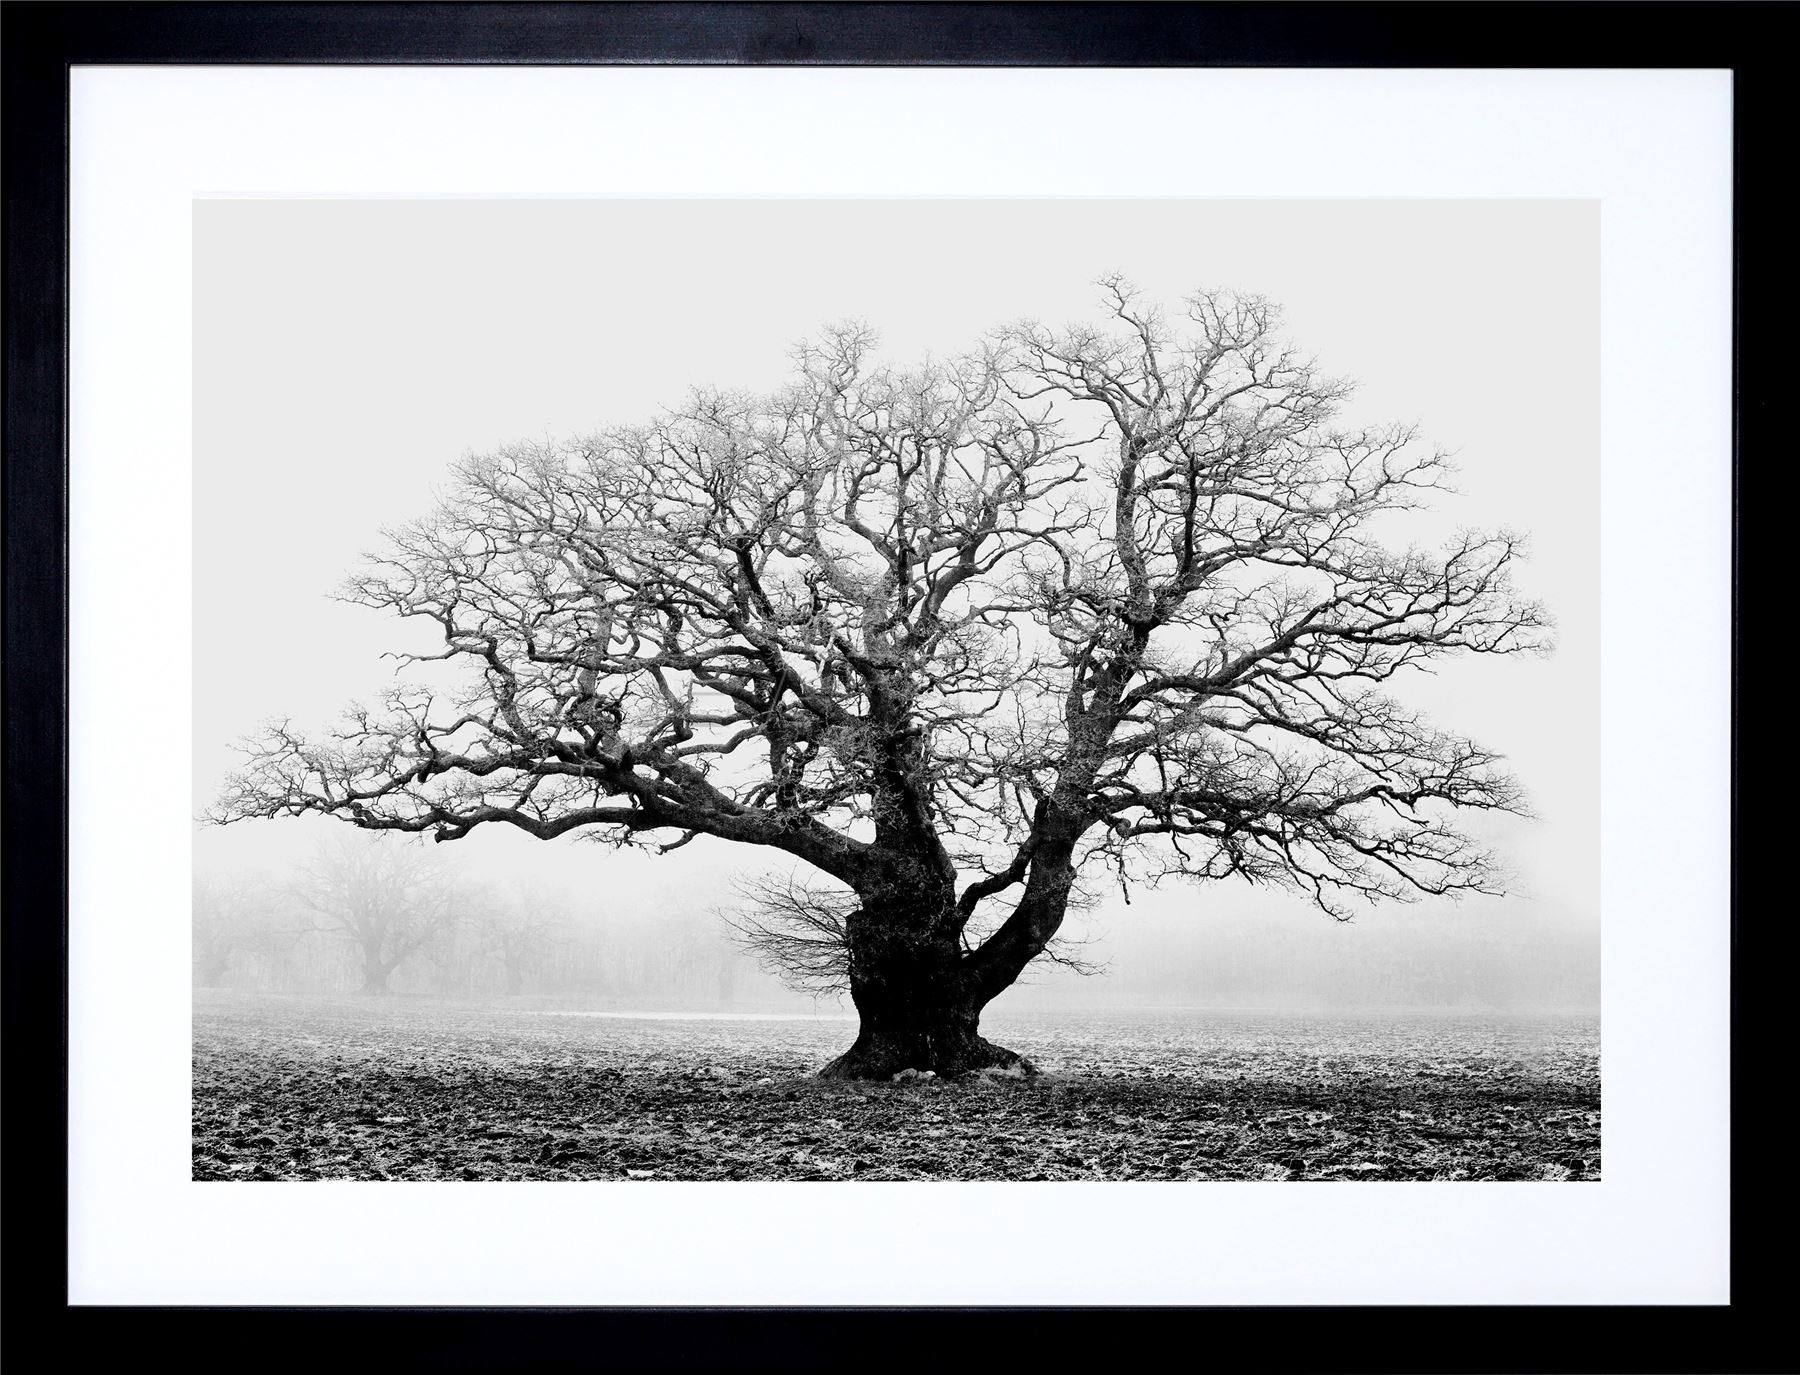 Old Oak Tree Black White Mist Fog Photo Framed Art Print Picture In Most Current Black And White Framed Art Prints (View 13 of 15)